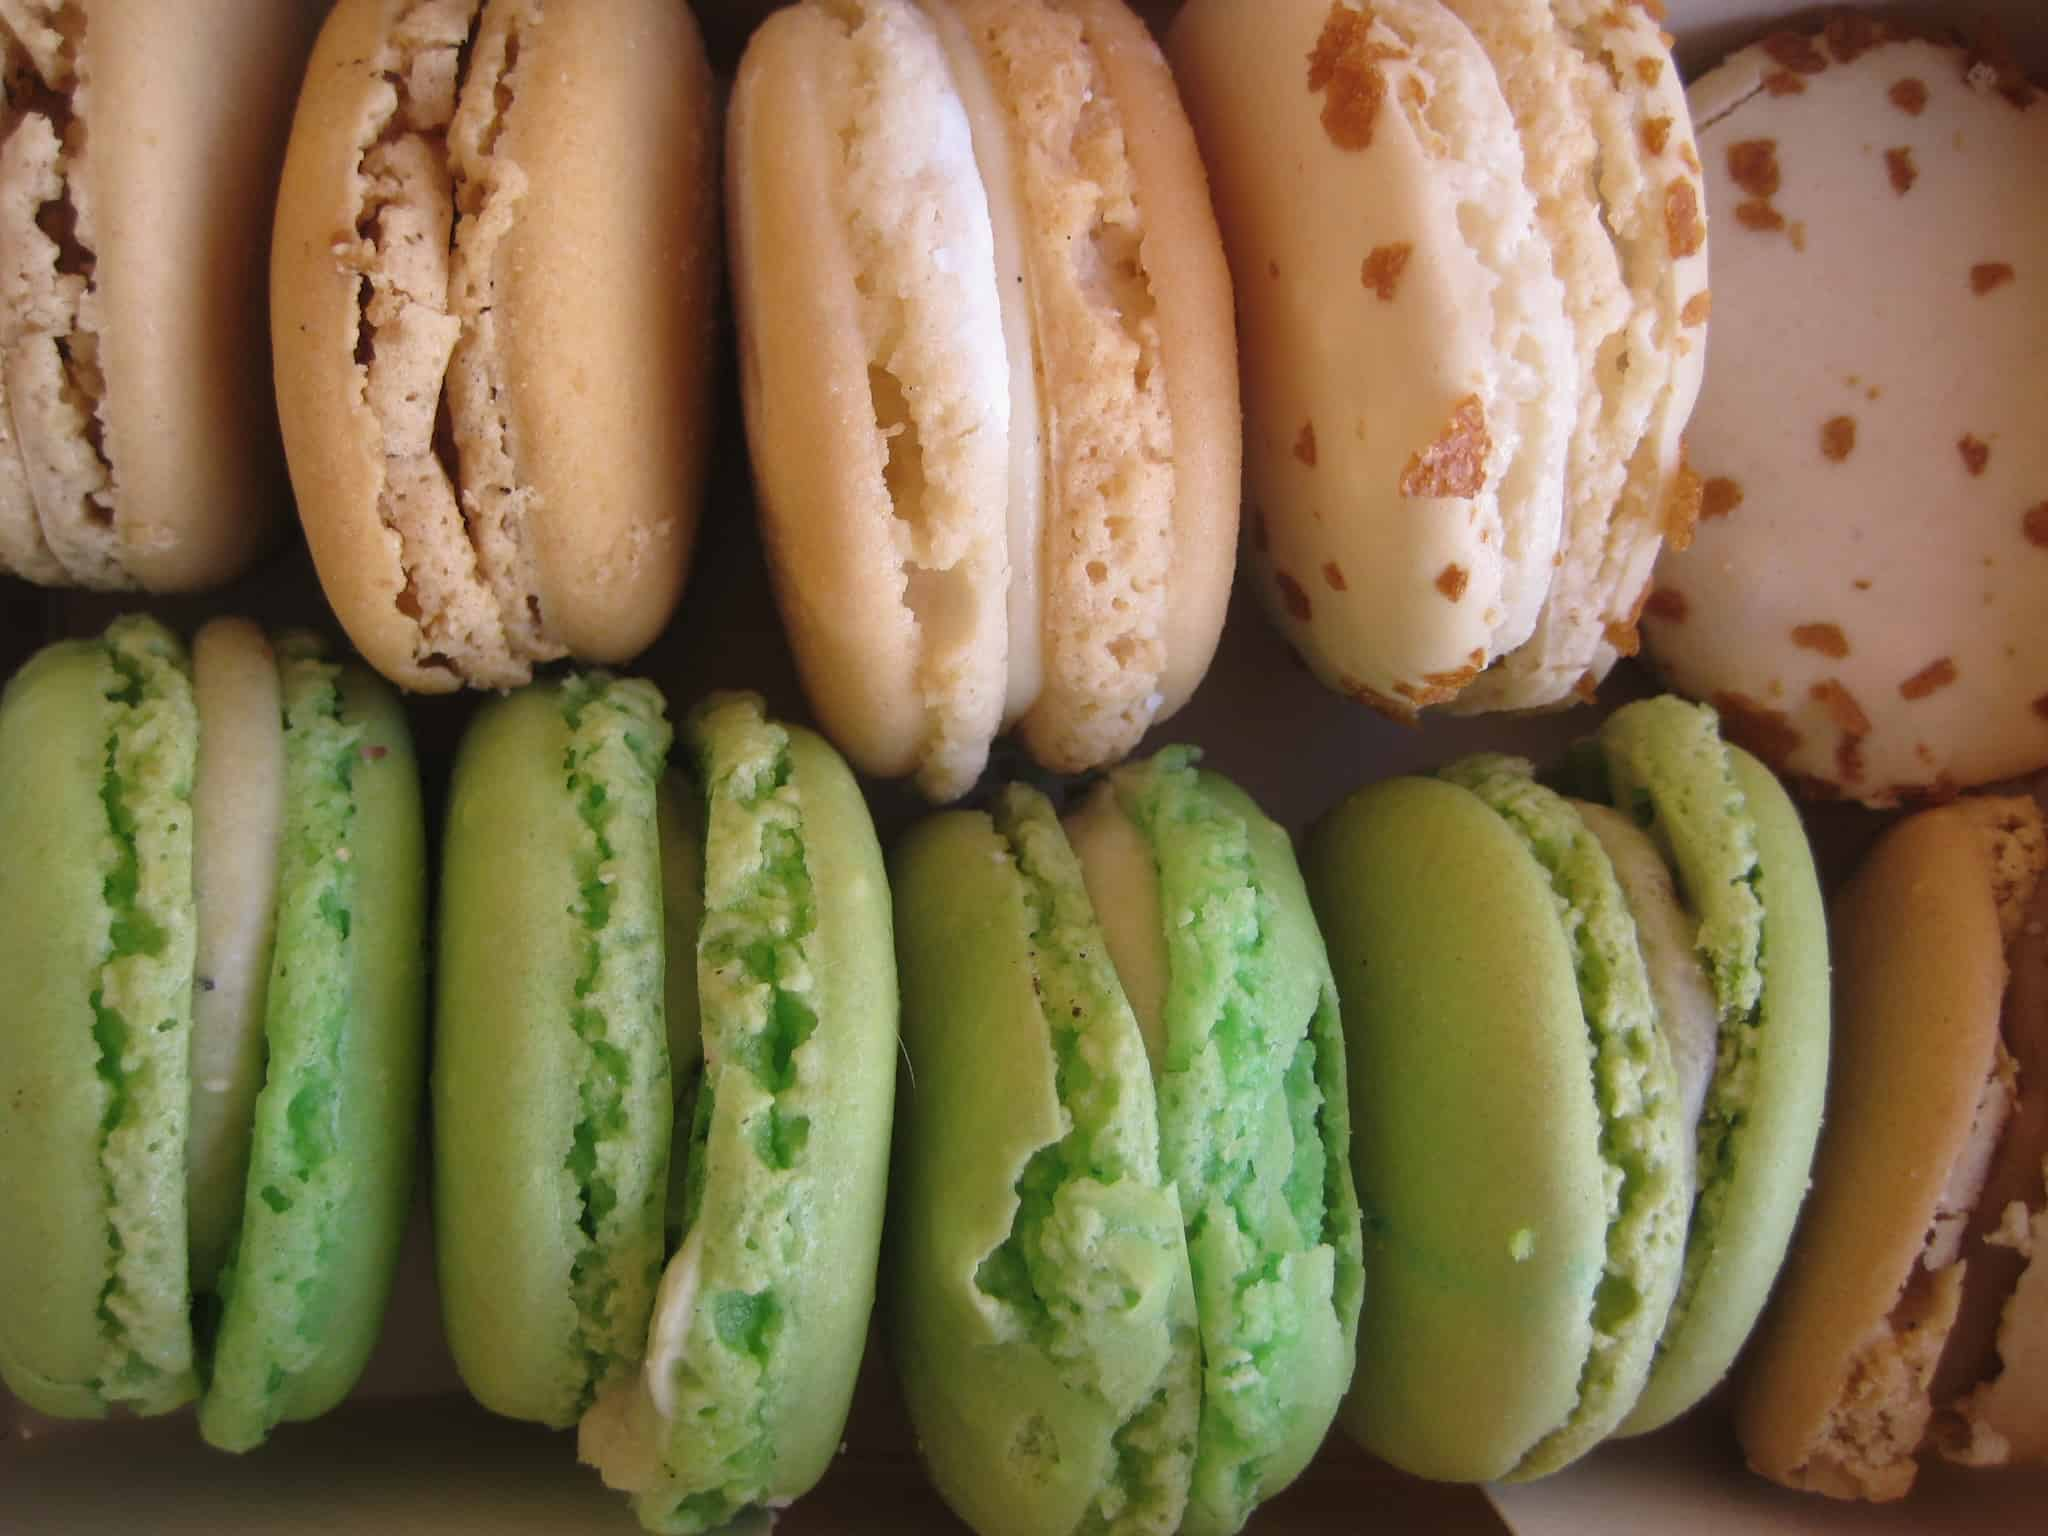 Best souvenirs from france your friends will appreciate the best souvenirs from france are the ones you can eat right its a little cliche since macarons are everywhere lately and ladure is the most well known publicscrutiny Images